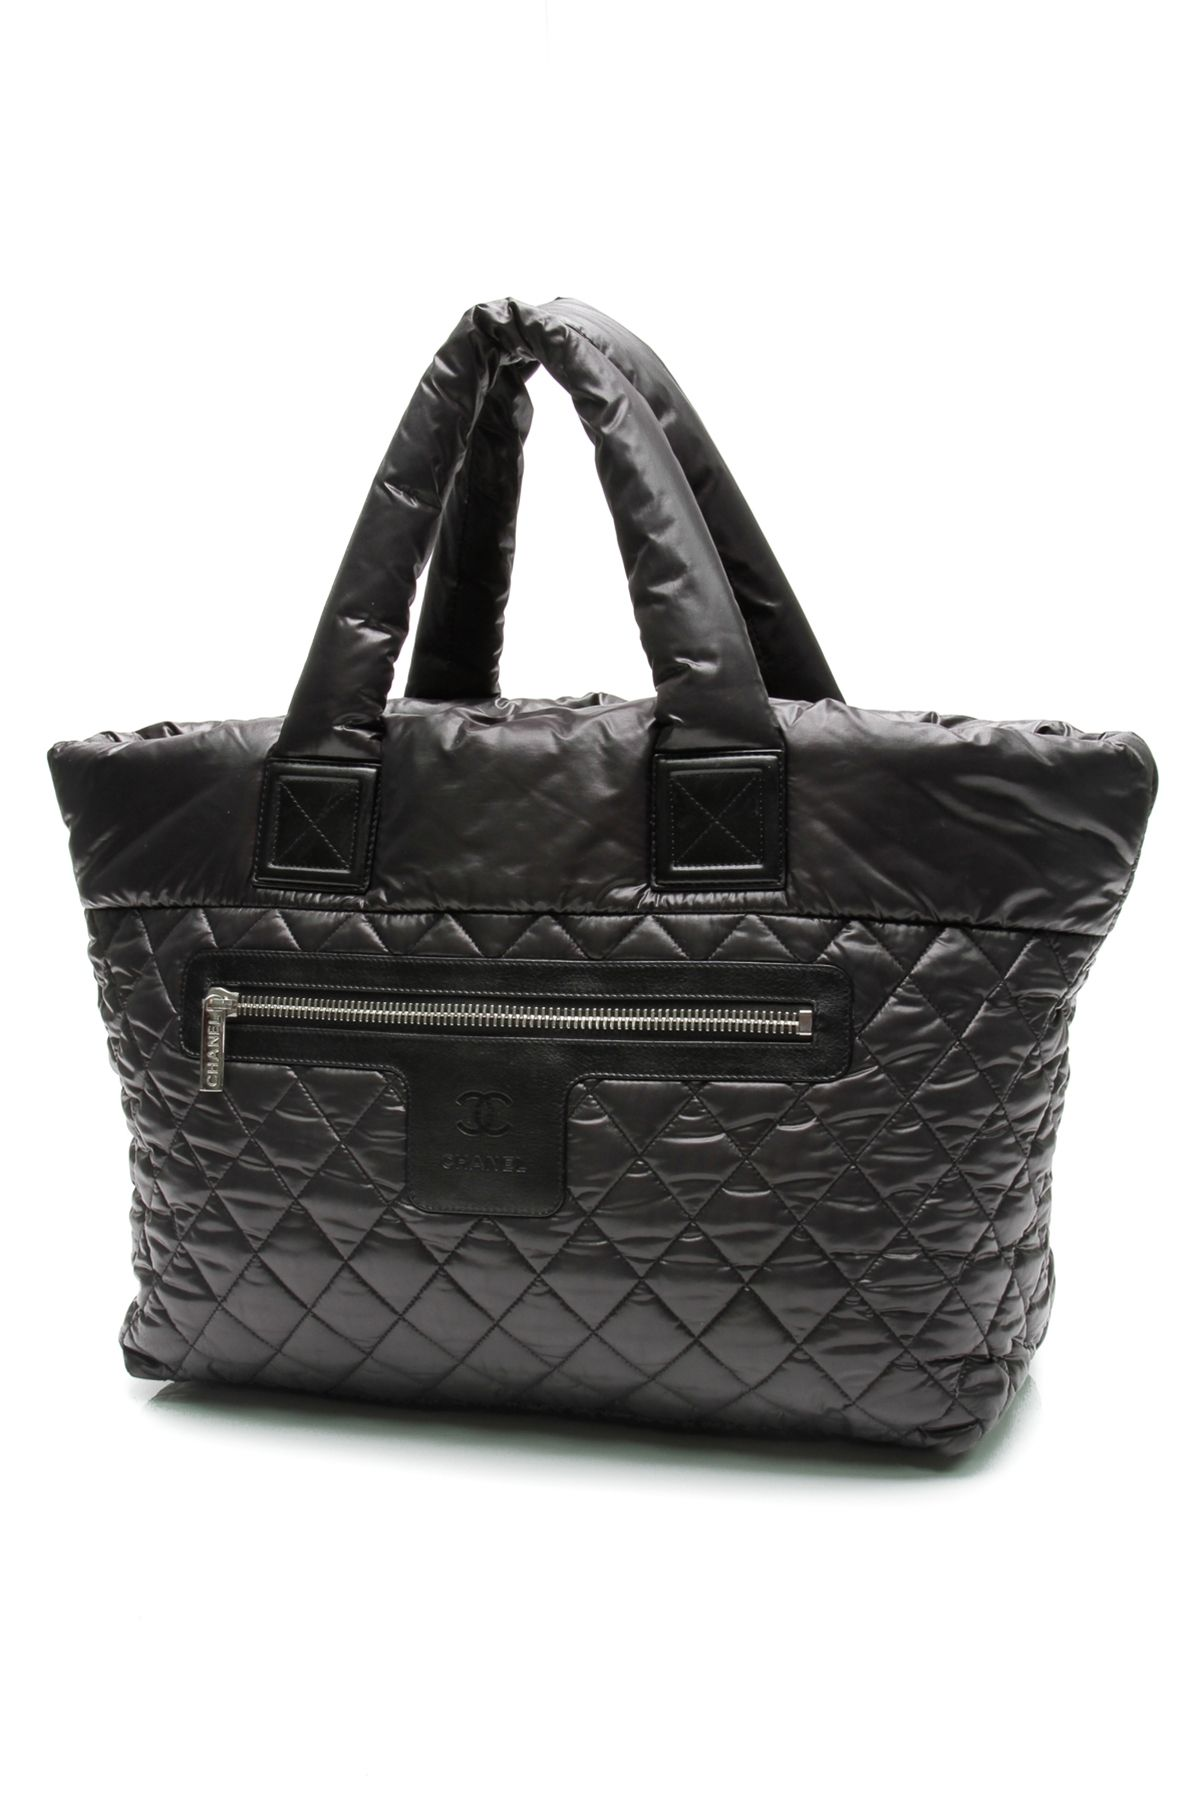 Chanel Black Quilted Nylon Coco Cocoon Tote Bag   Crazy for Coco ... 1ce0204c32